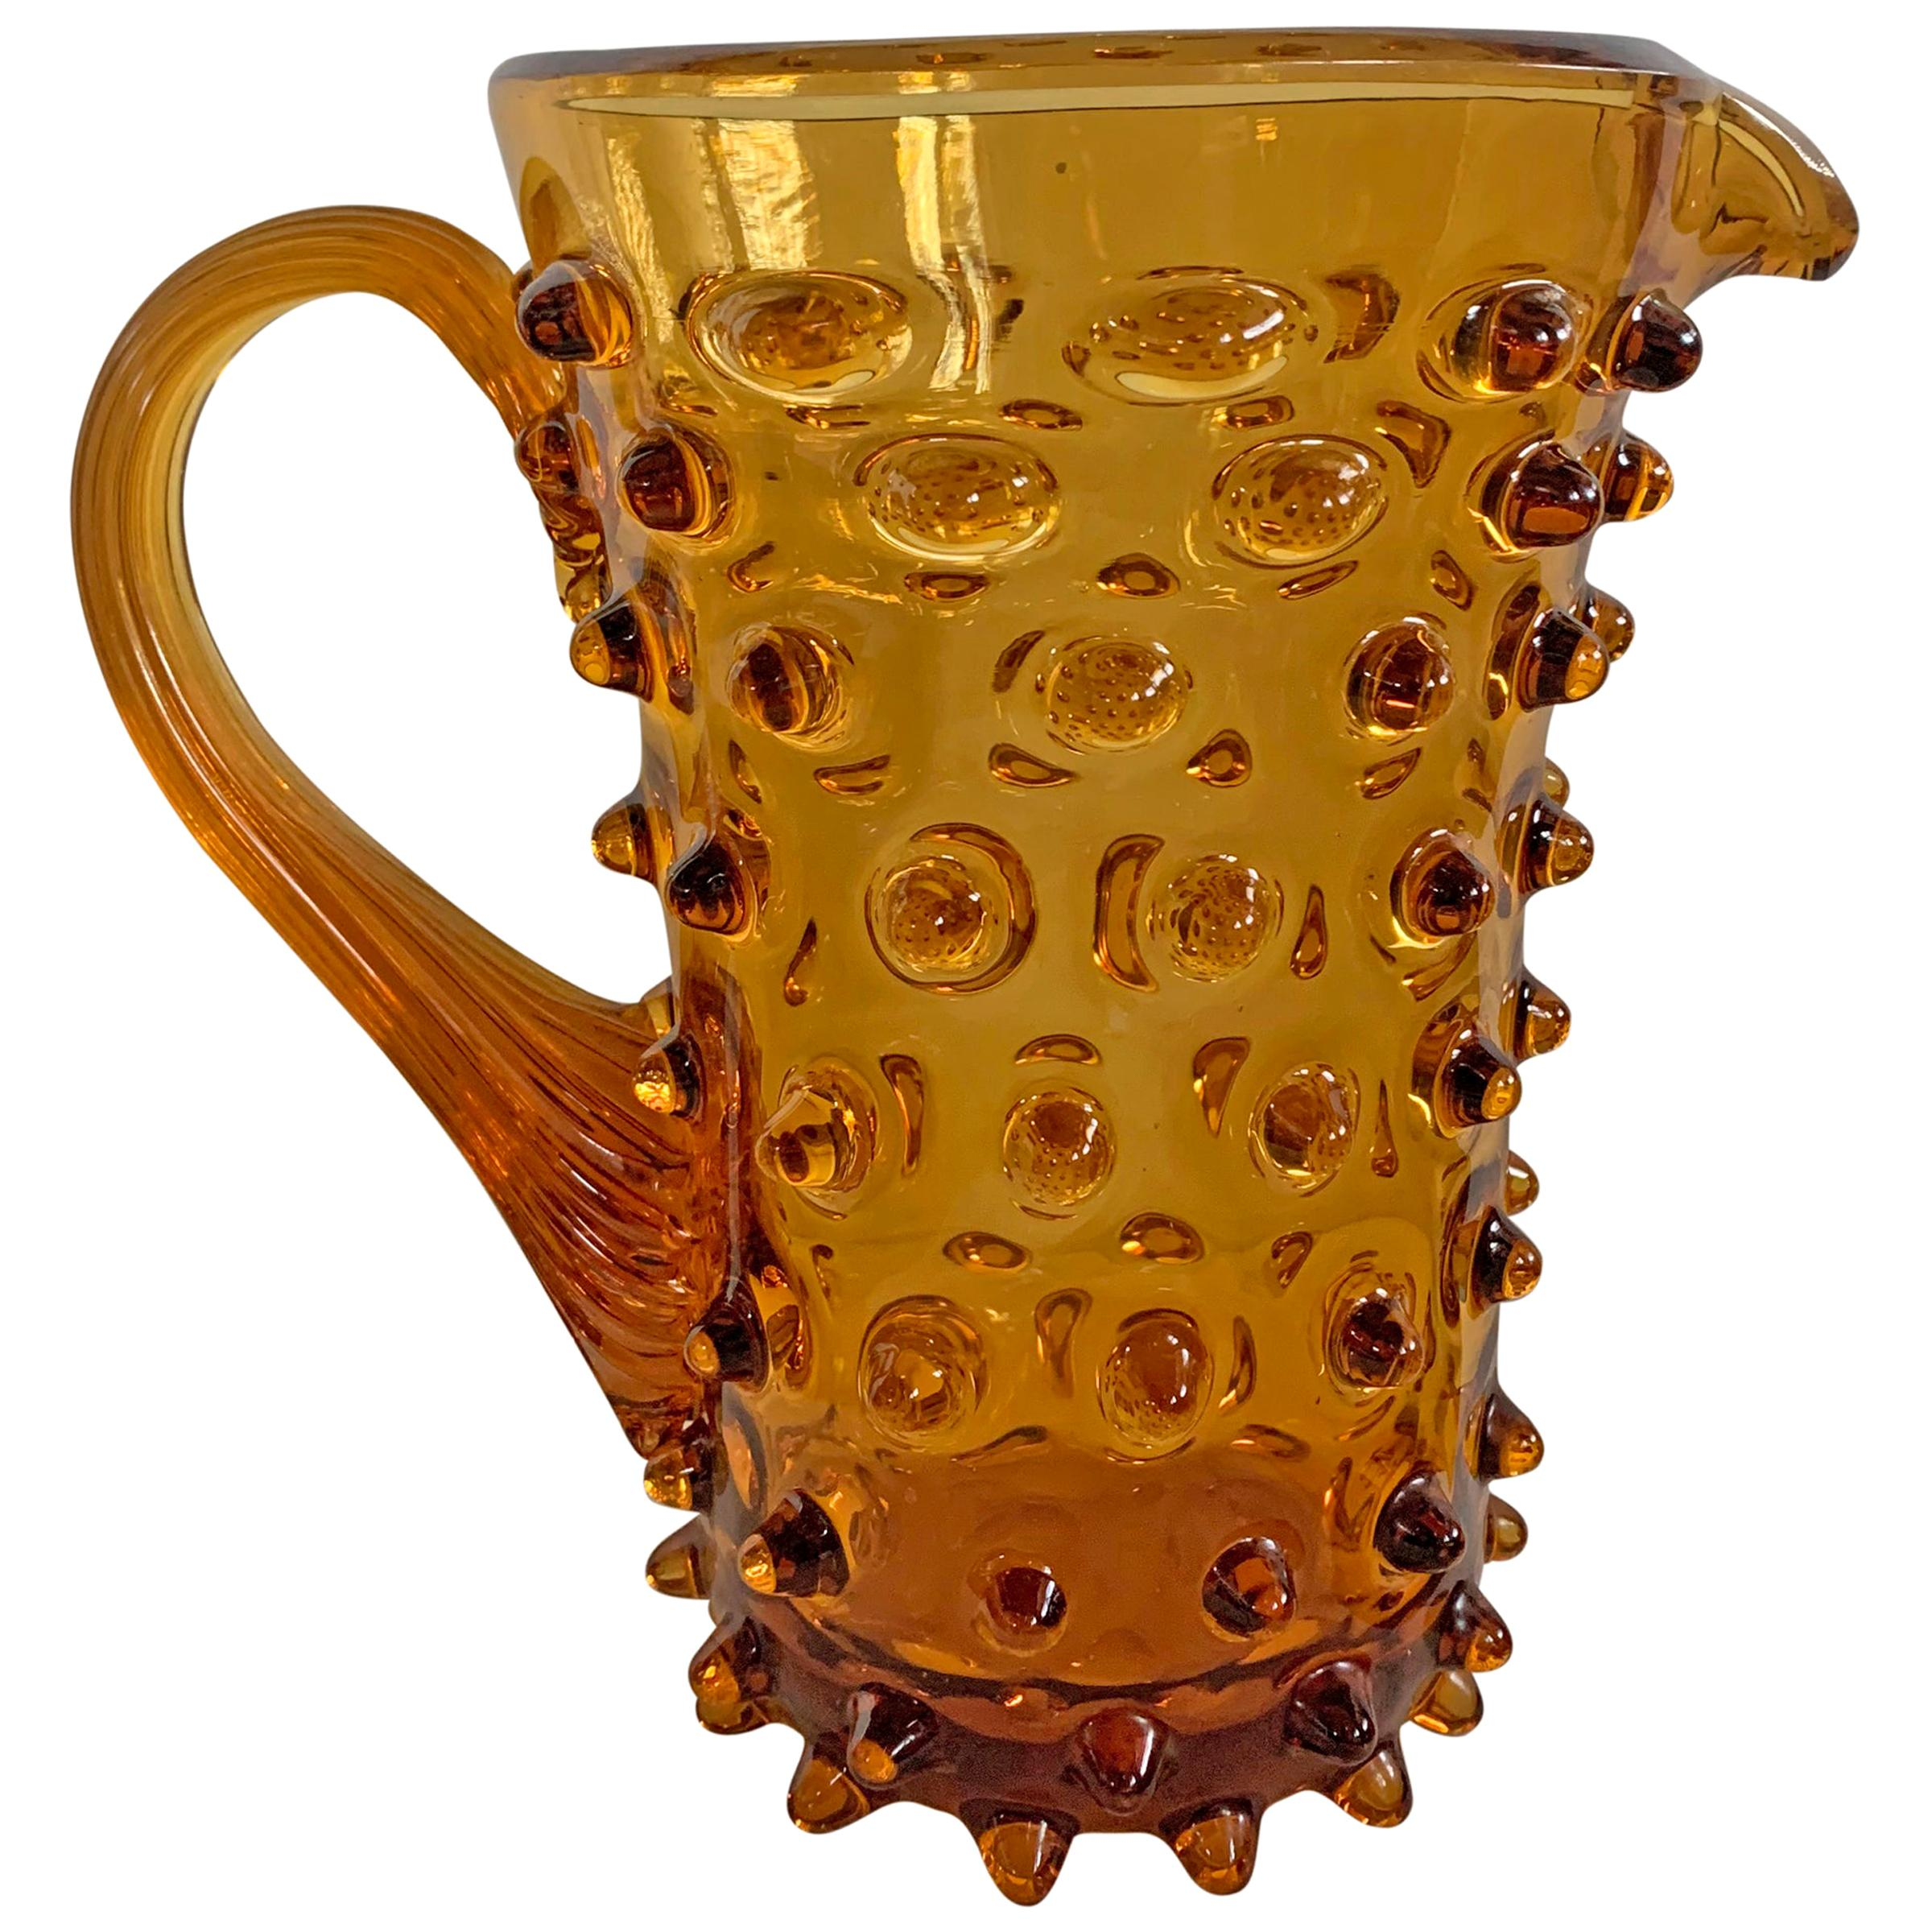 Midcentury American Amber Hobnail Glass Pitcher